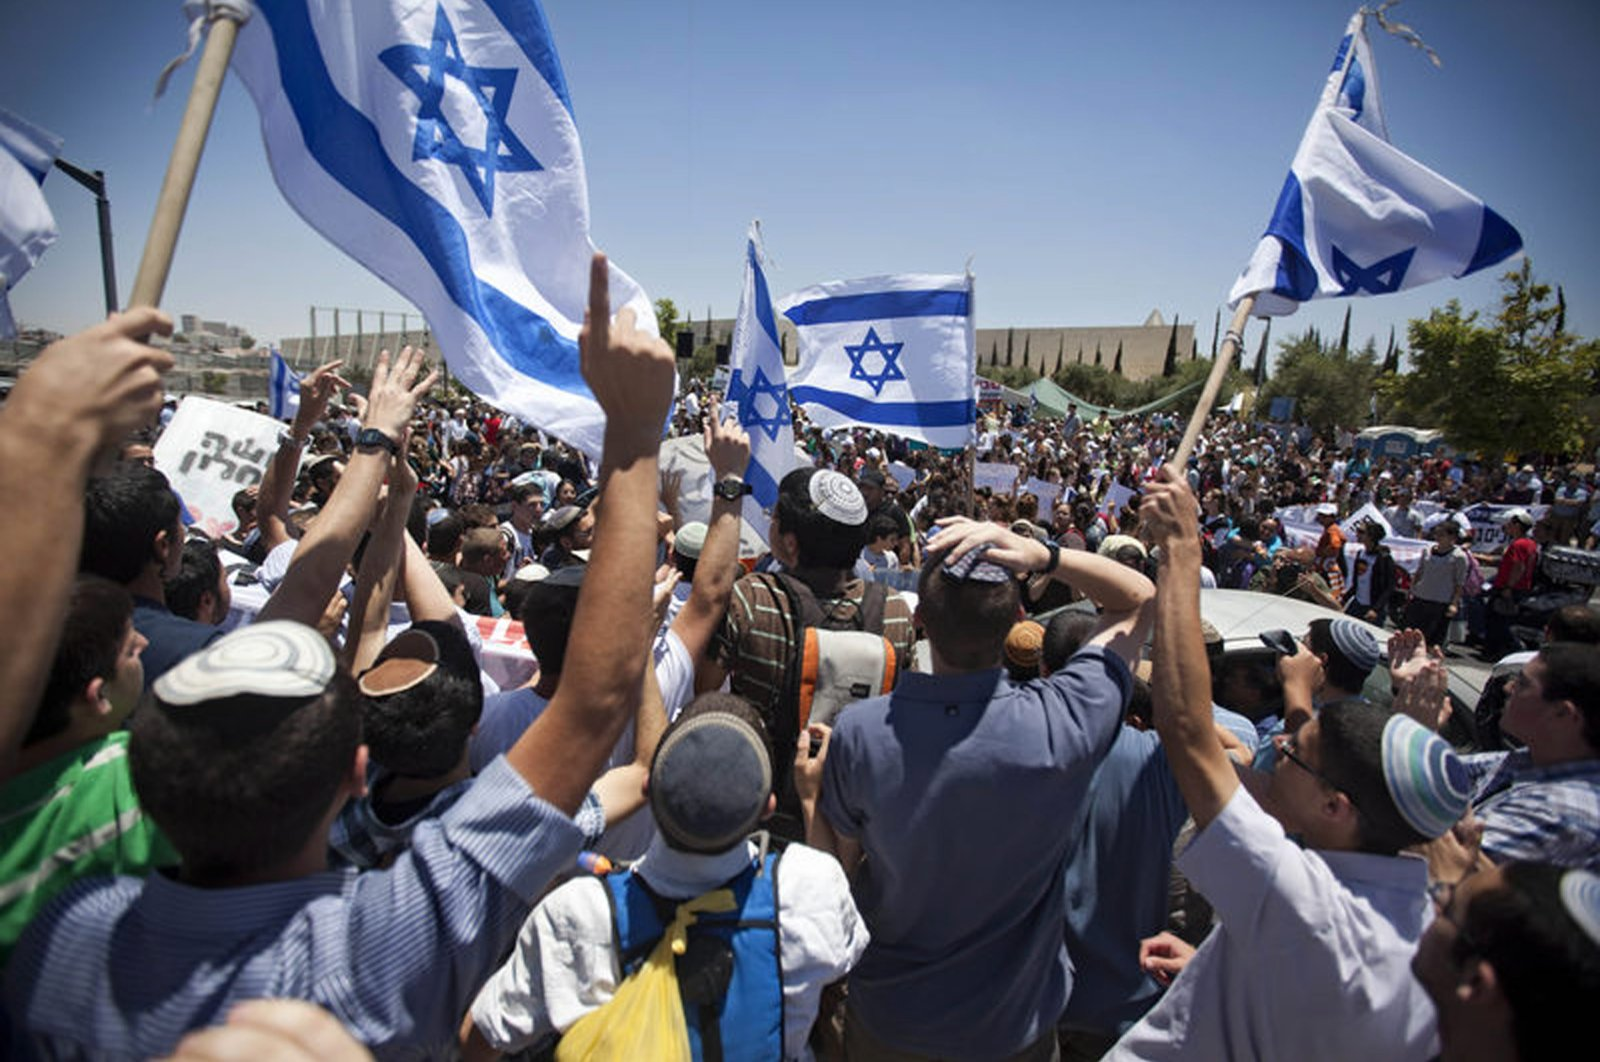 Israeli settlers wave flags during a protest outside the Supreme Court against the proposed decision to evacuate an occupied West Bank outpost in the Ulpana neighborhood, West Jerusalem, Israel, June 6, 2012. (AP Photo)